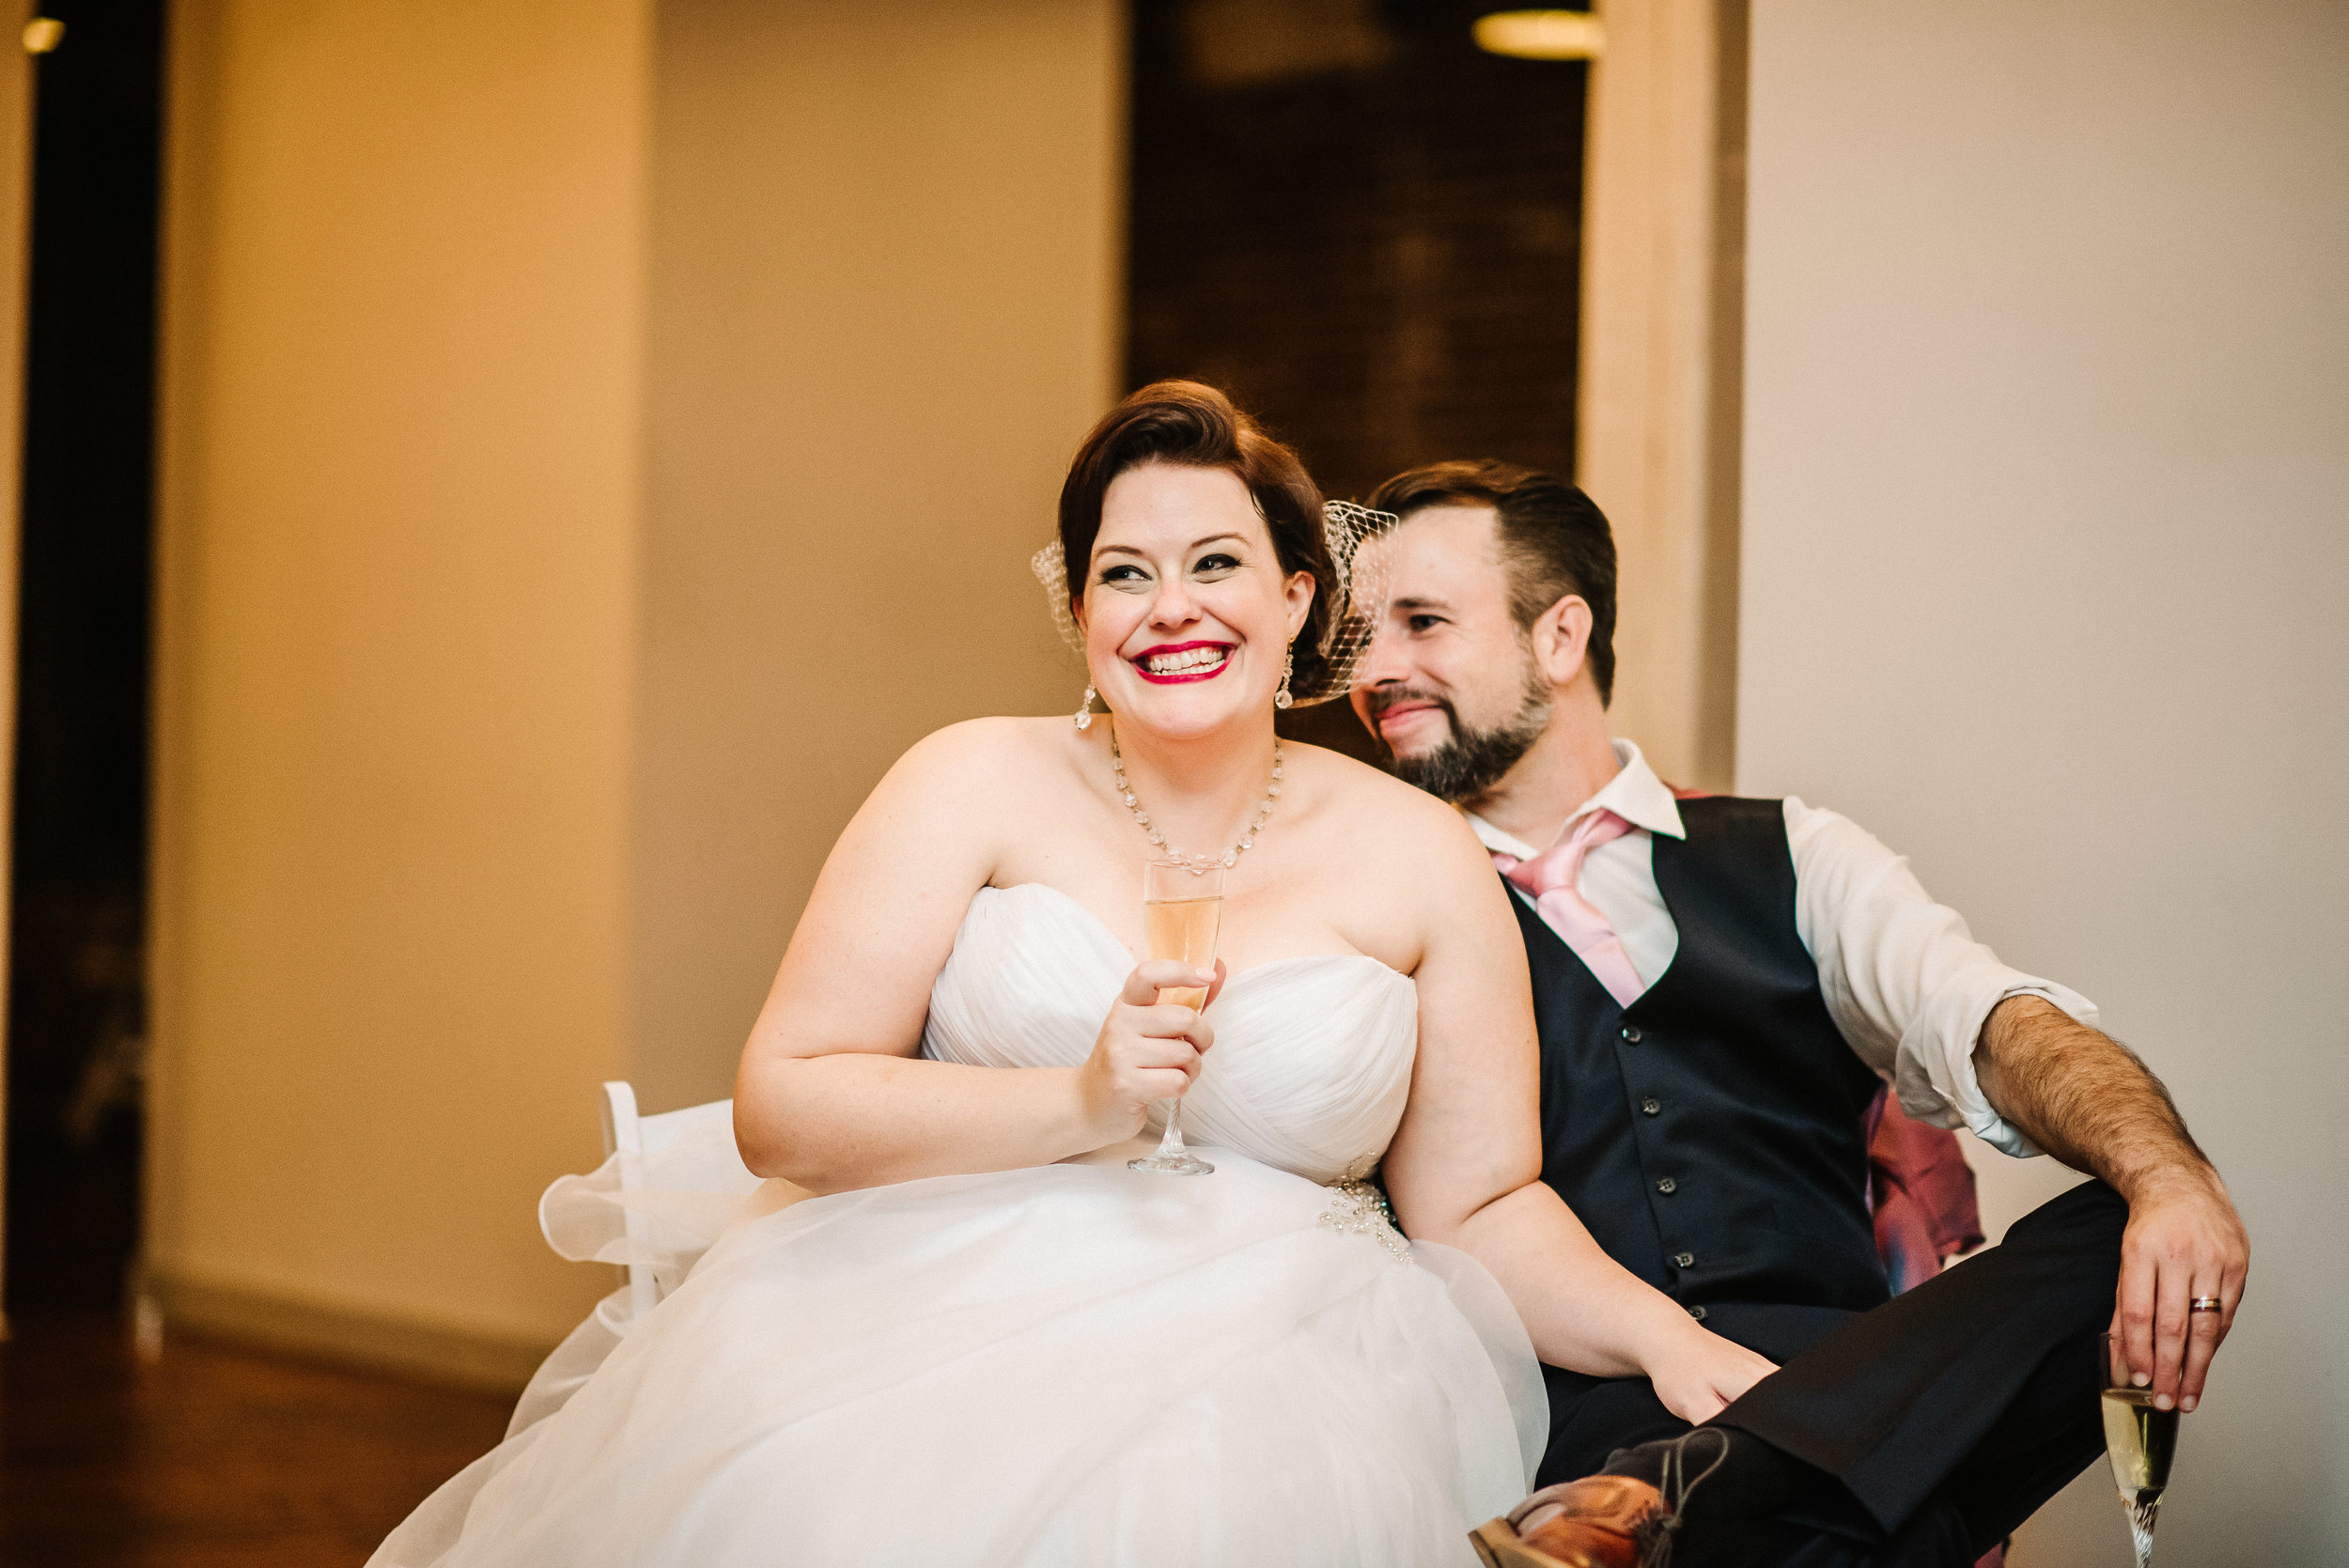 409 South Main Wedding_Morris Wedding_Ashley Benham Photography-966.jpg